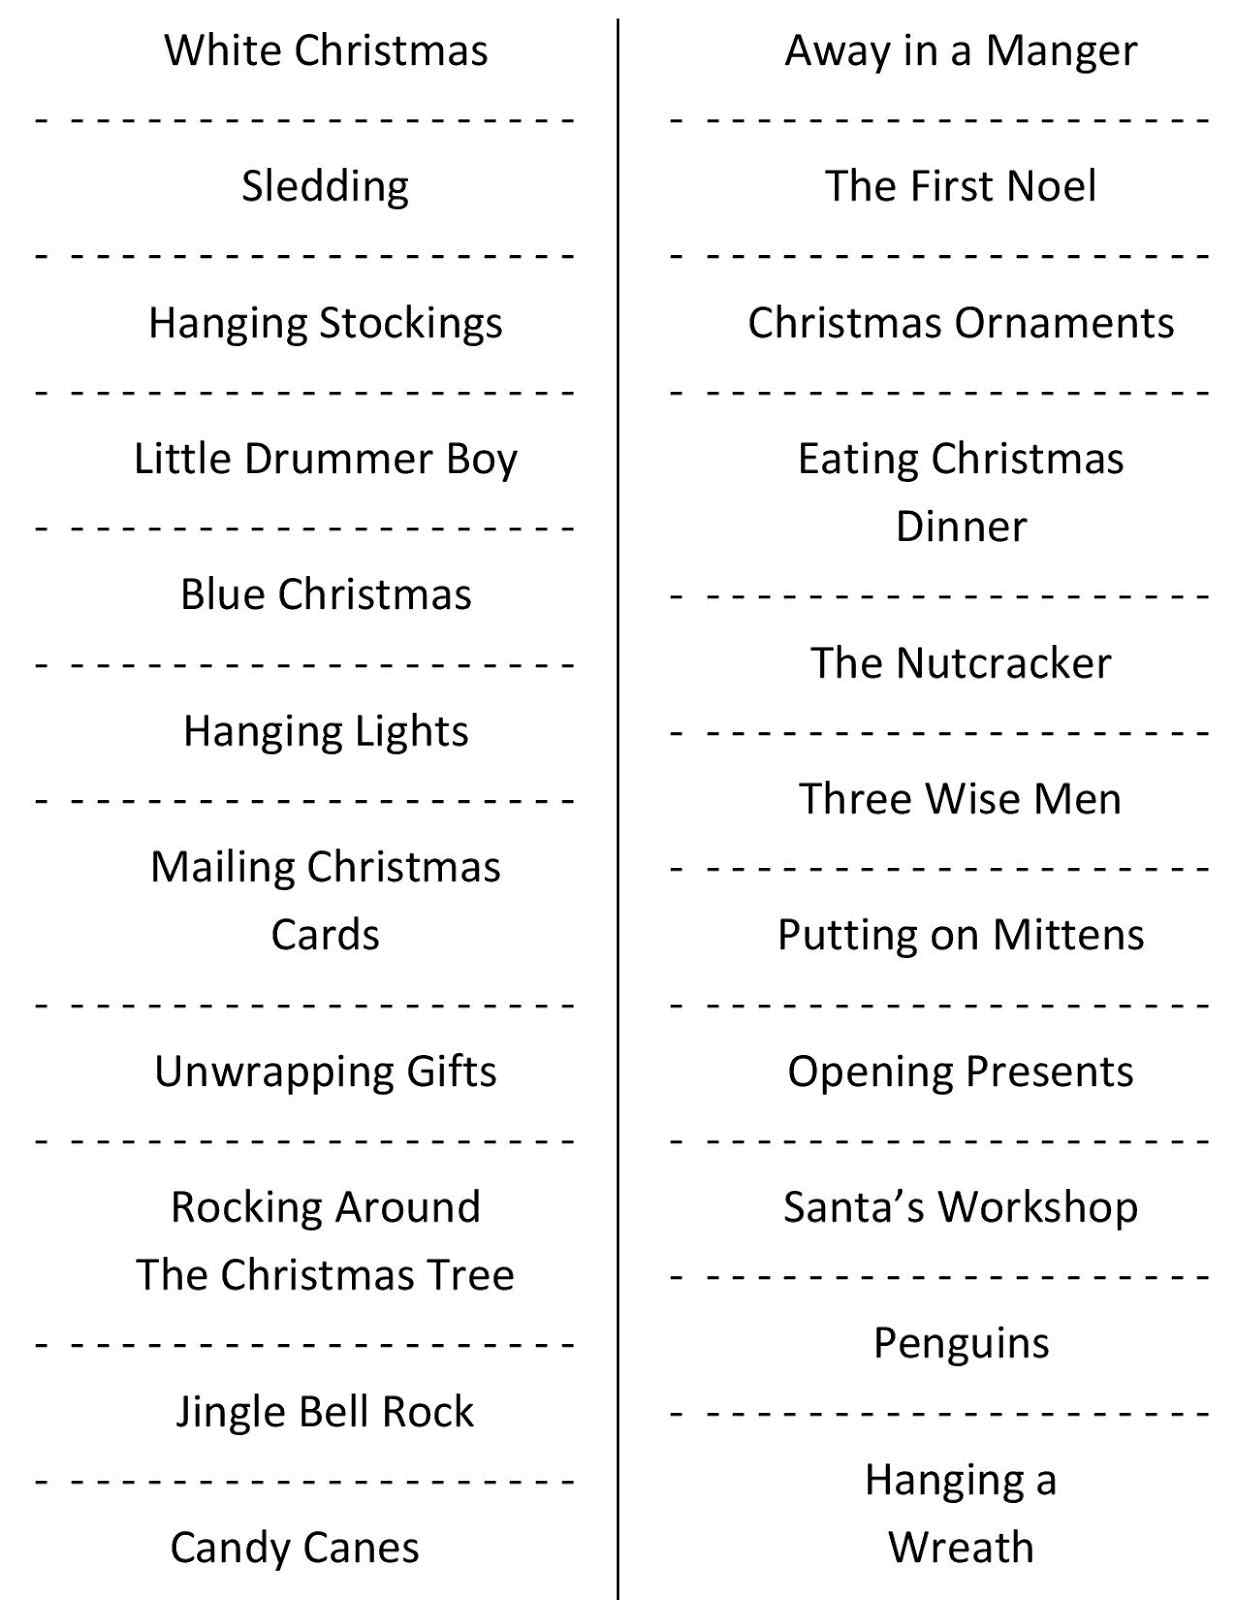 Holiday Party Games For Adults Christmas The Office Awesome - Holiday Office Party Games Free Printable